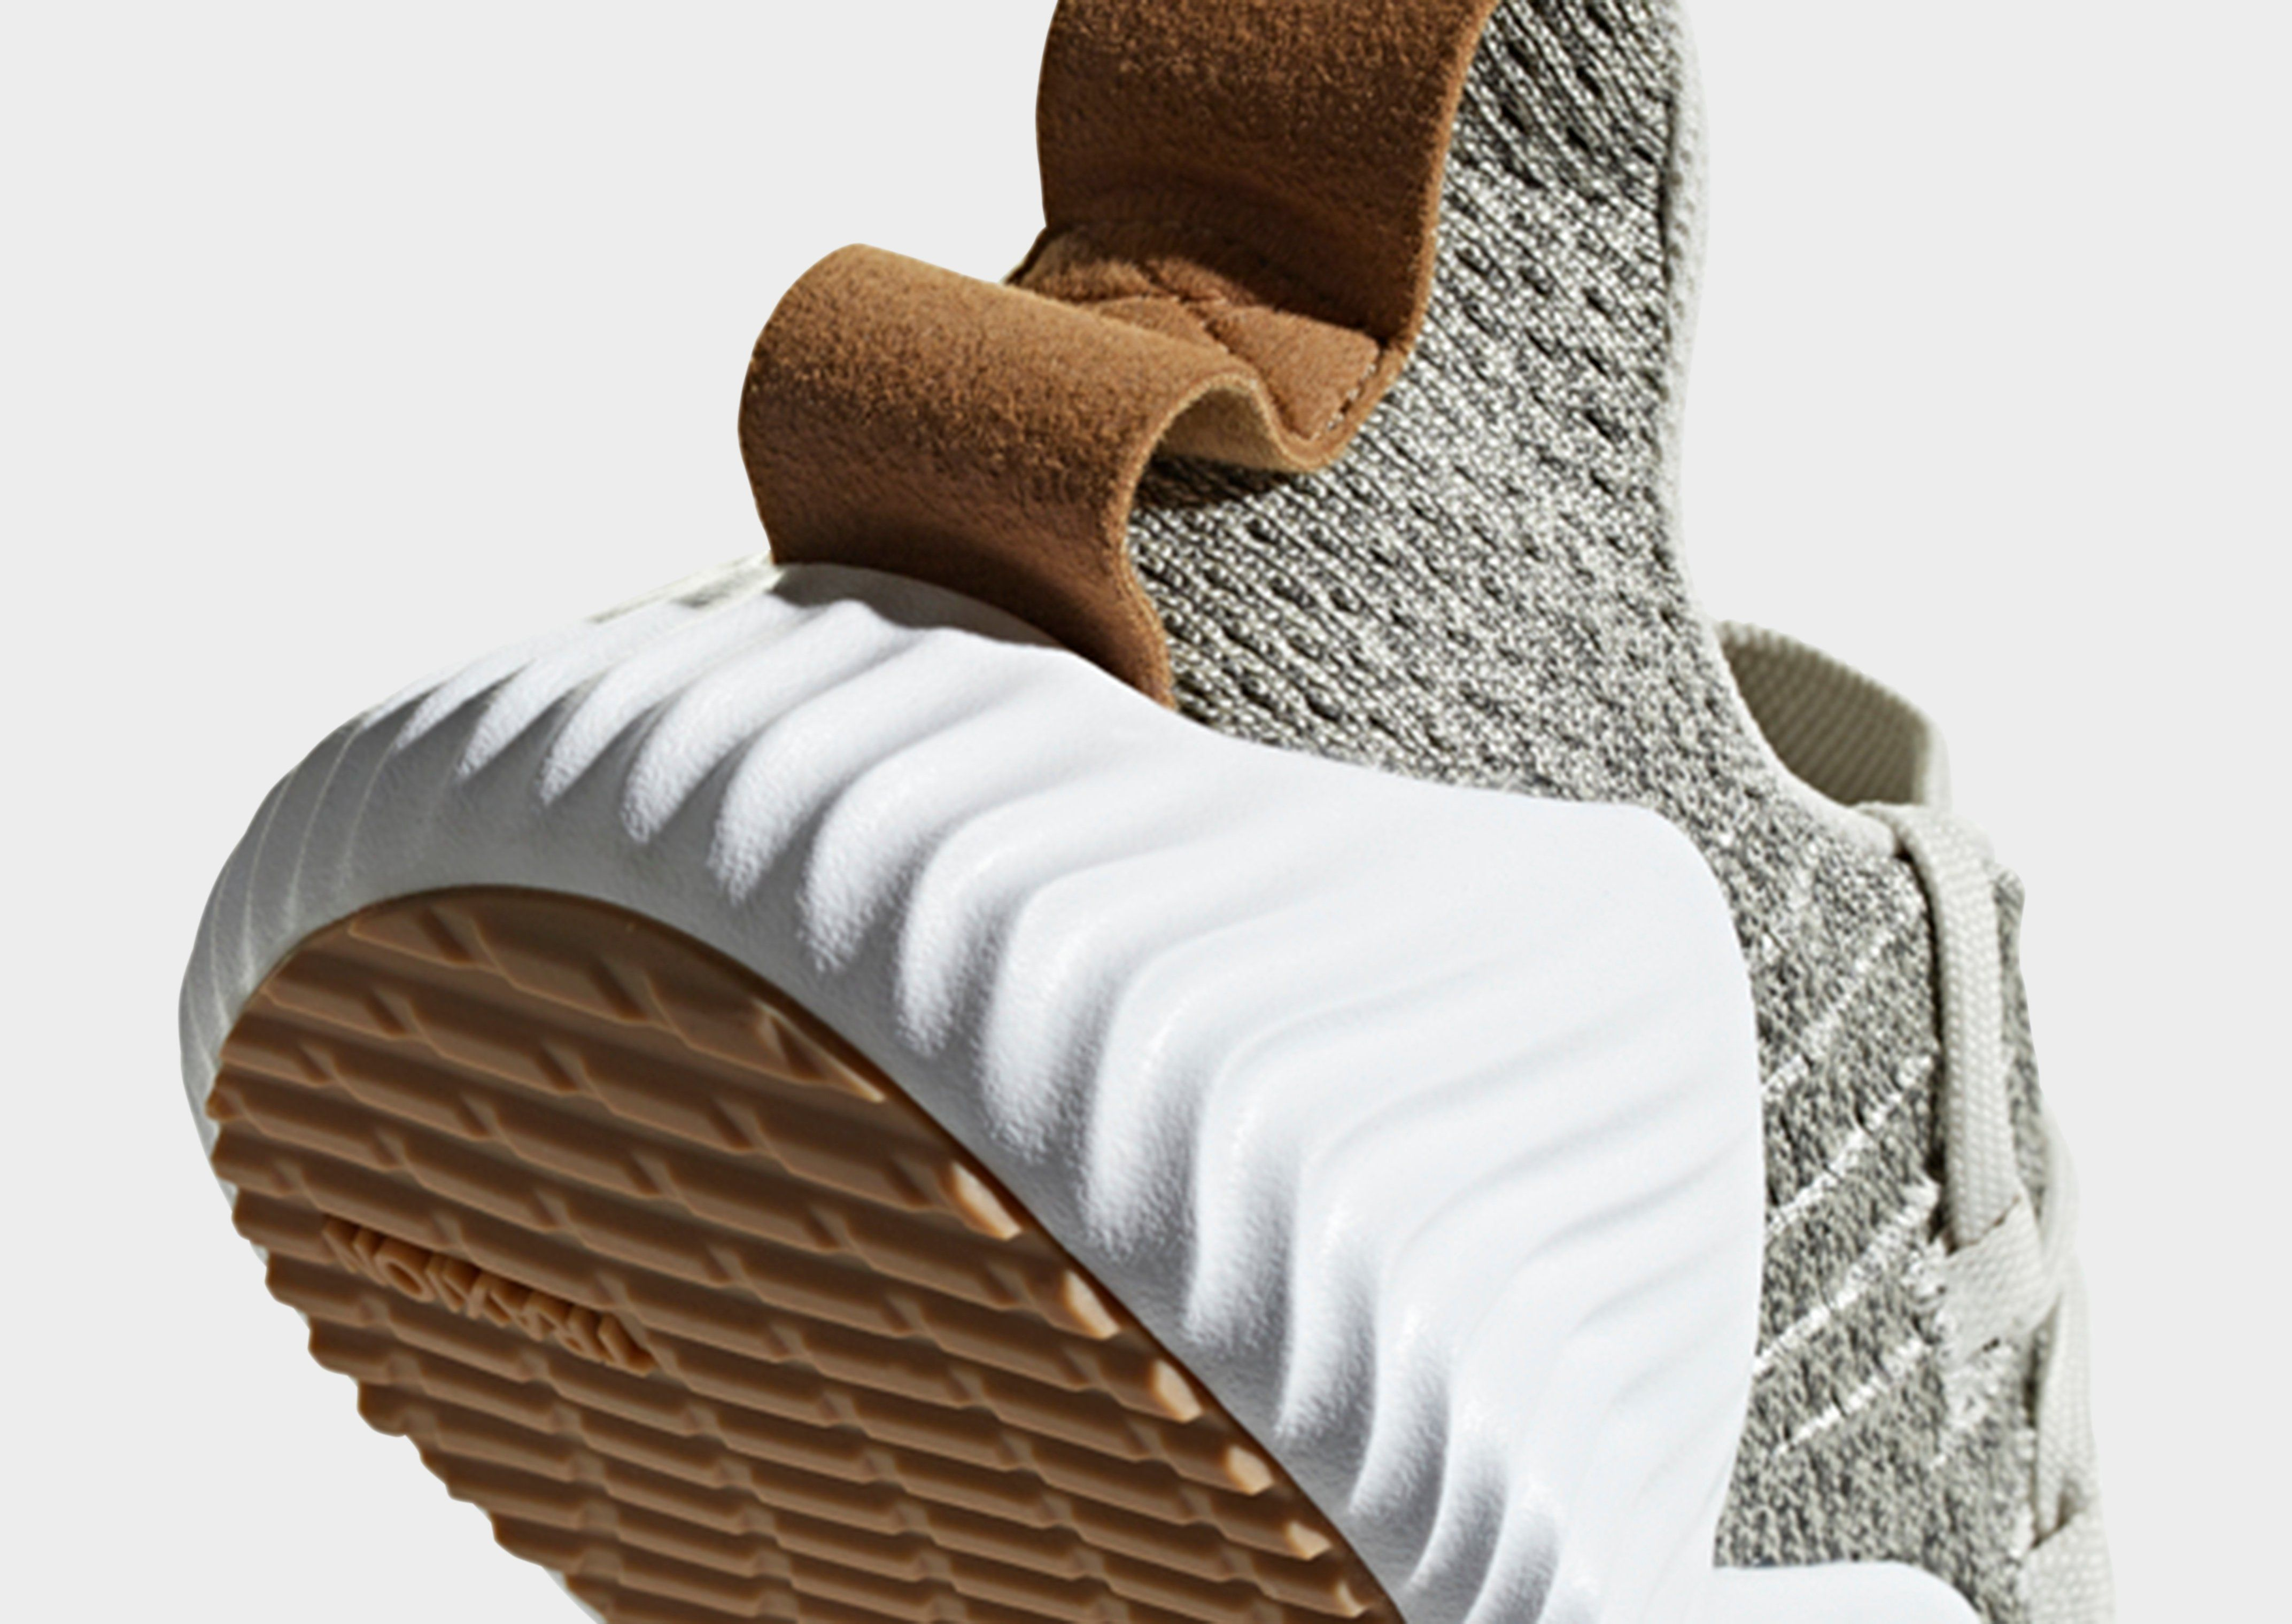 ADIDAS Alphabounce Trainer Shoes